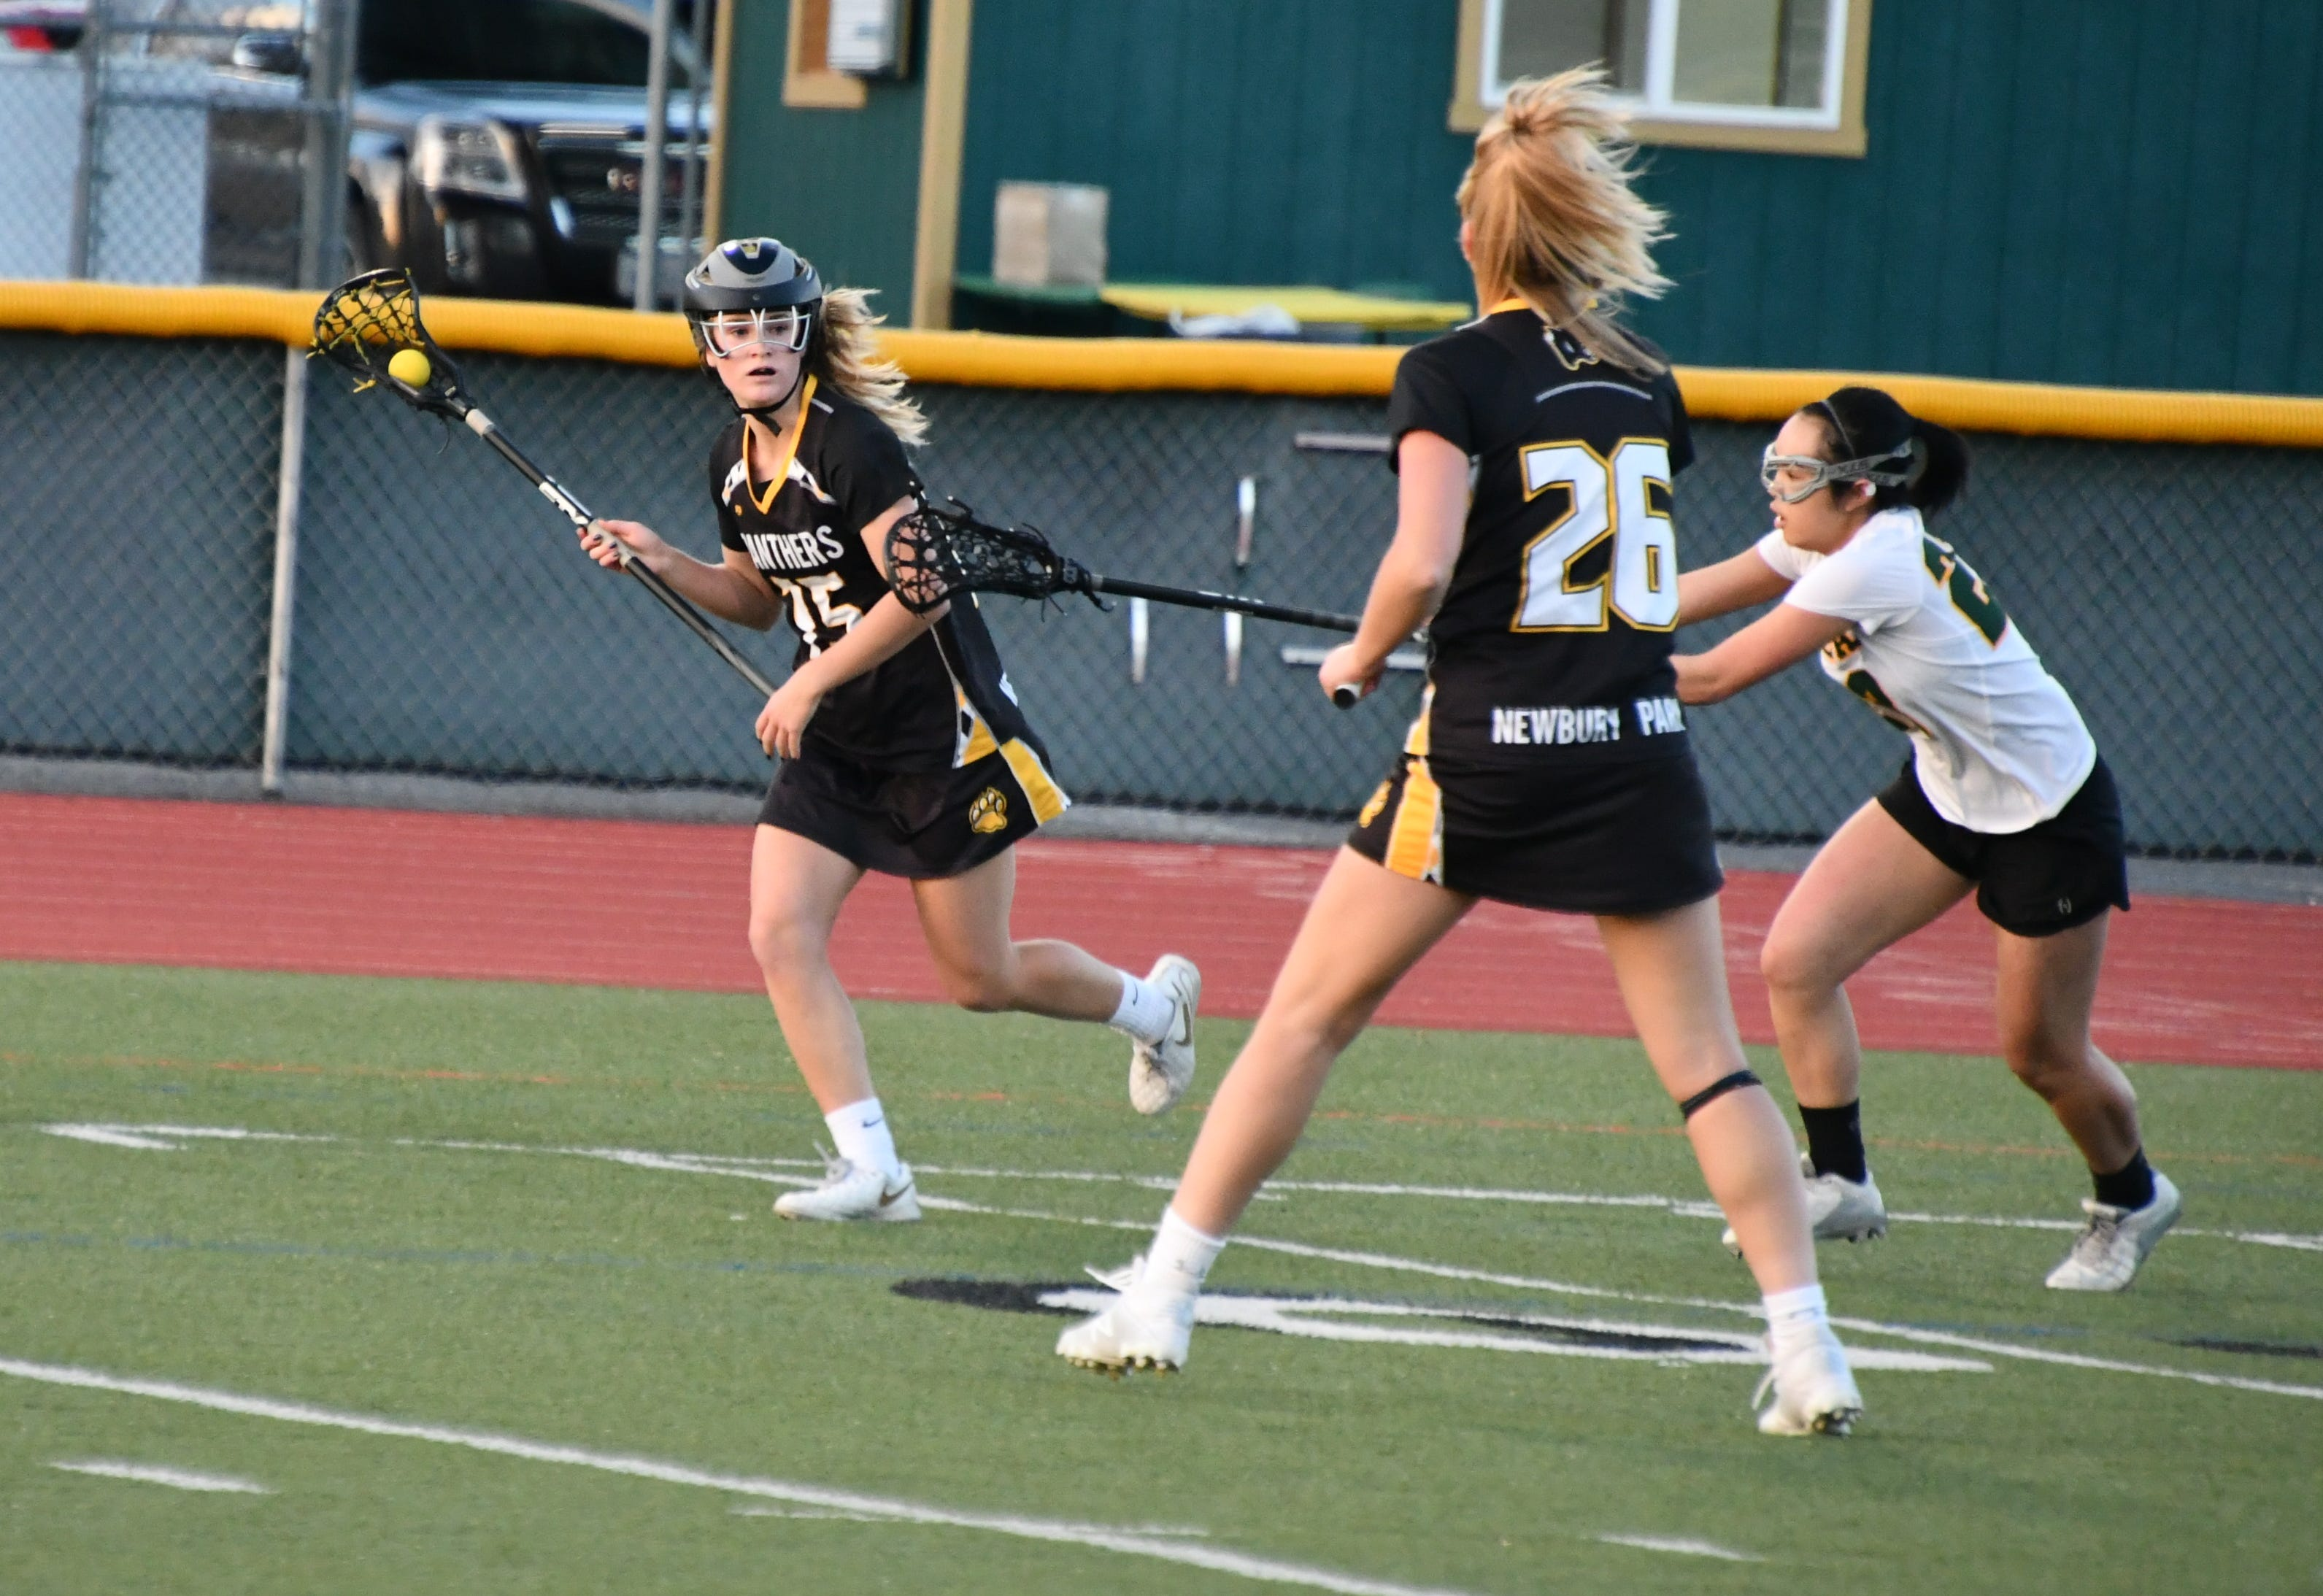 Newbury Park sophomore attacker Emma Ing looks for a teammate at Royal High on March 7.  The Panthers won, 24-3.